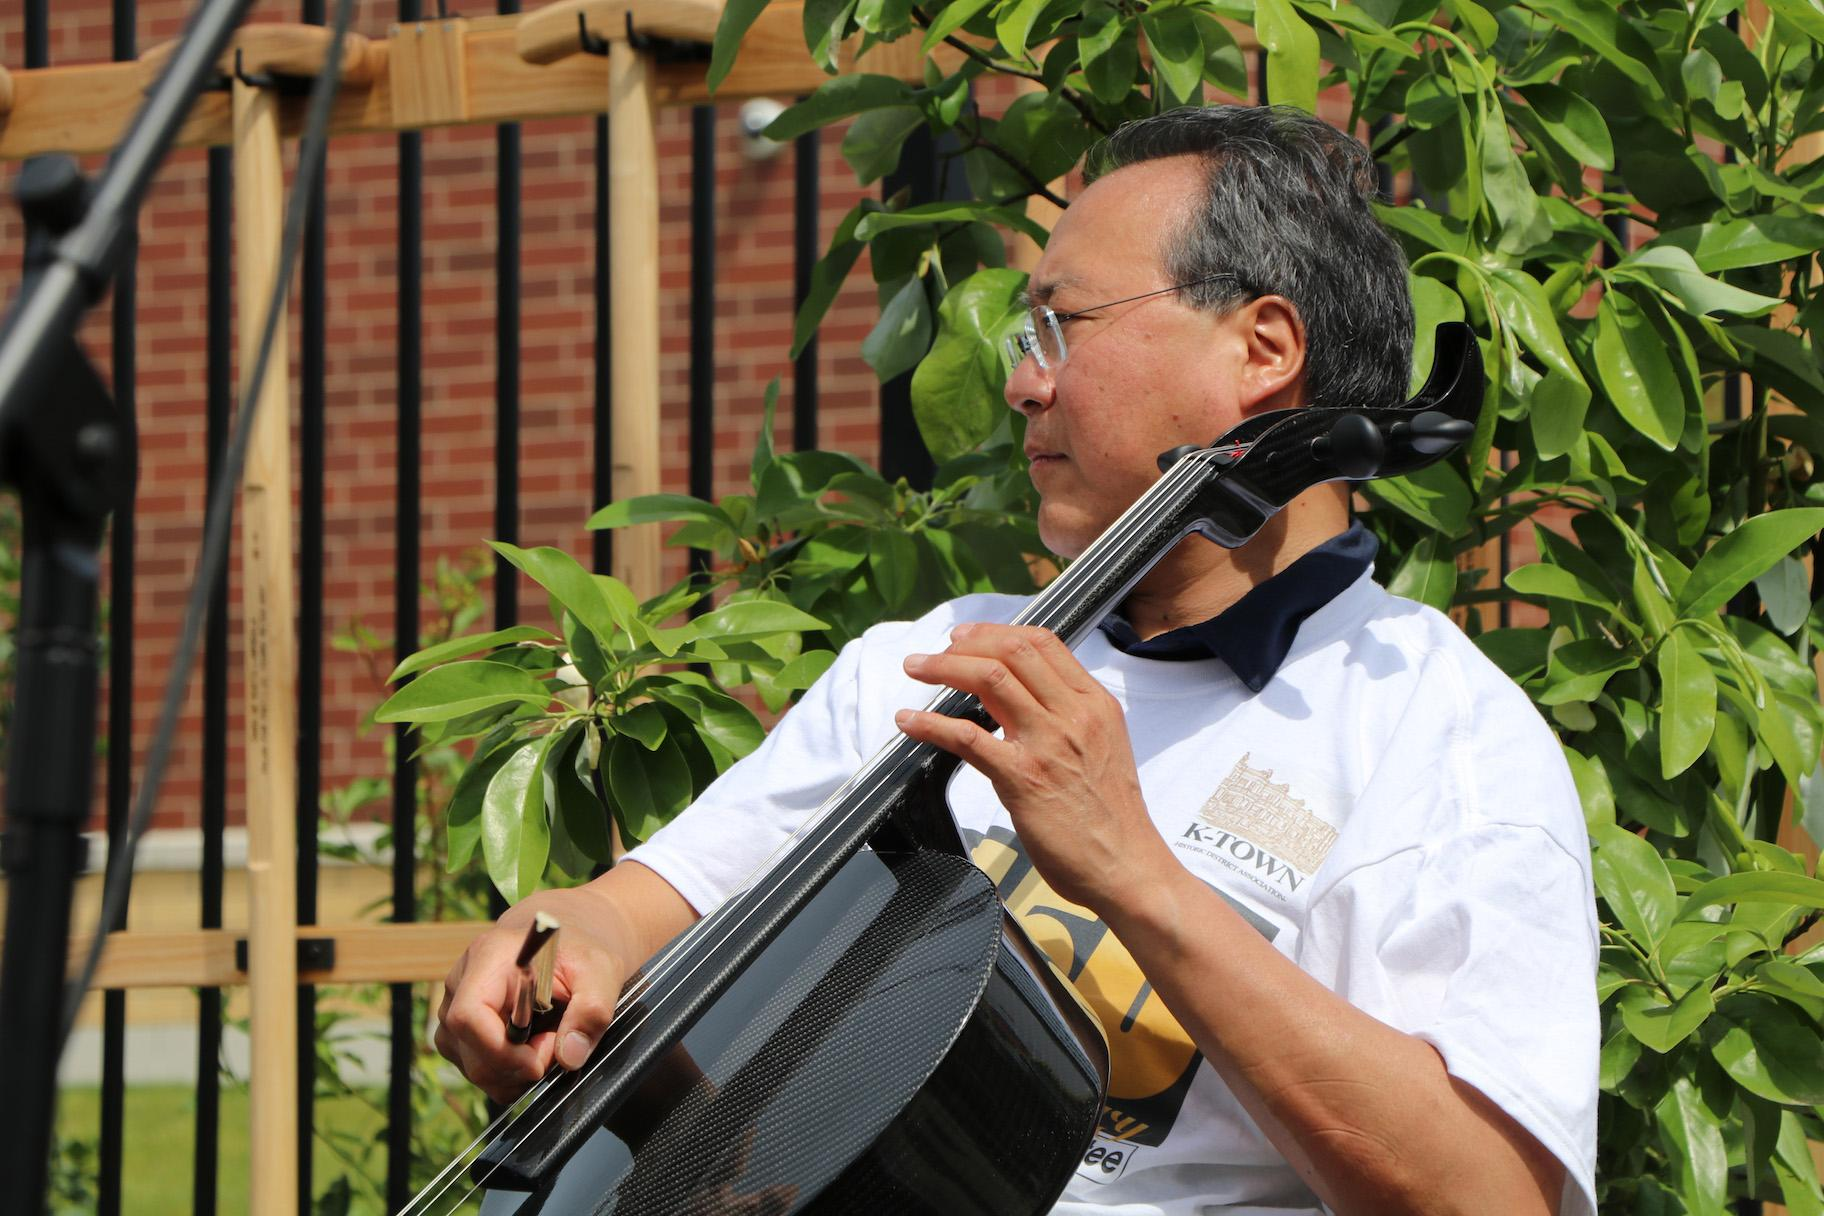 Yo-Yo Ma performs a composition by Baroque master Johann Sebastian Bach in Chicago's Unity Park on June 21, 2019. (Evan Garcia / WTTW)(Evan Garcia / WTTW)